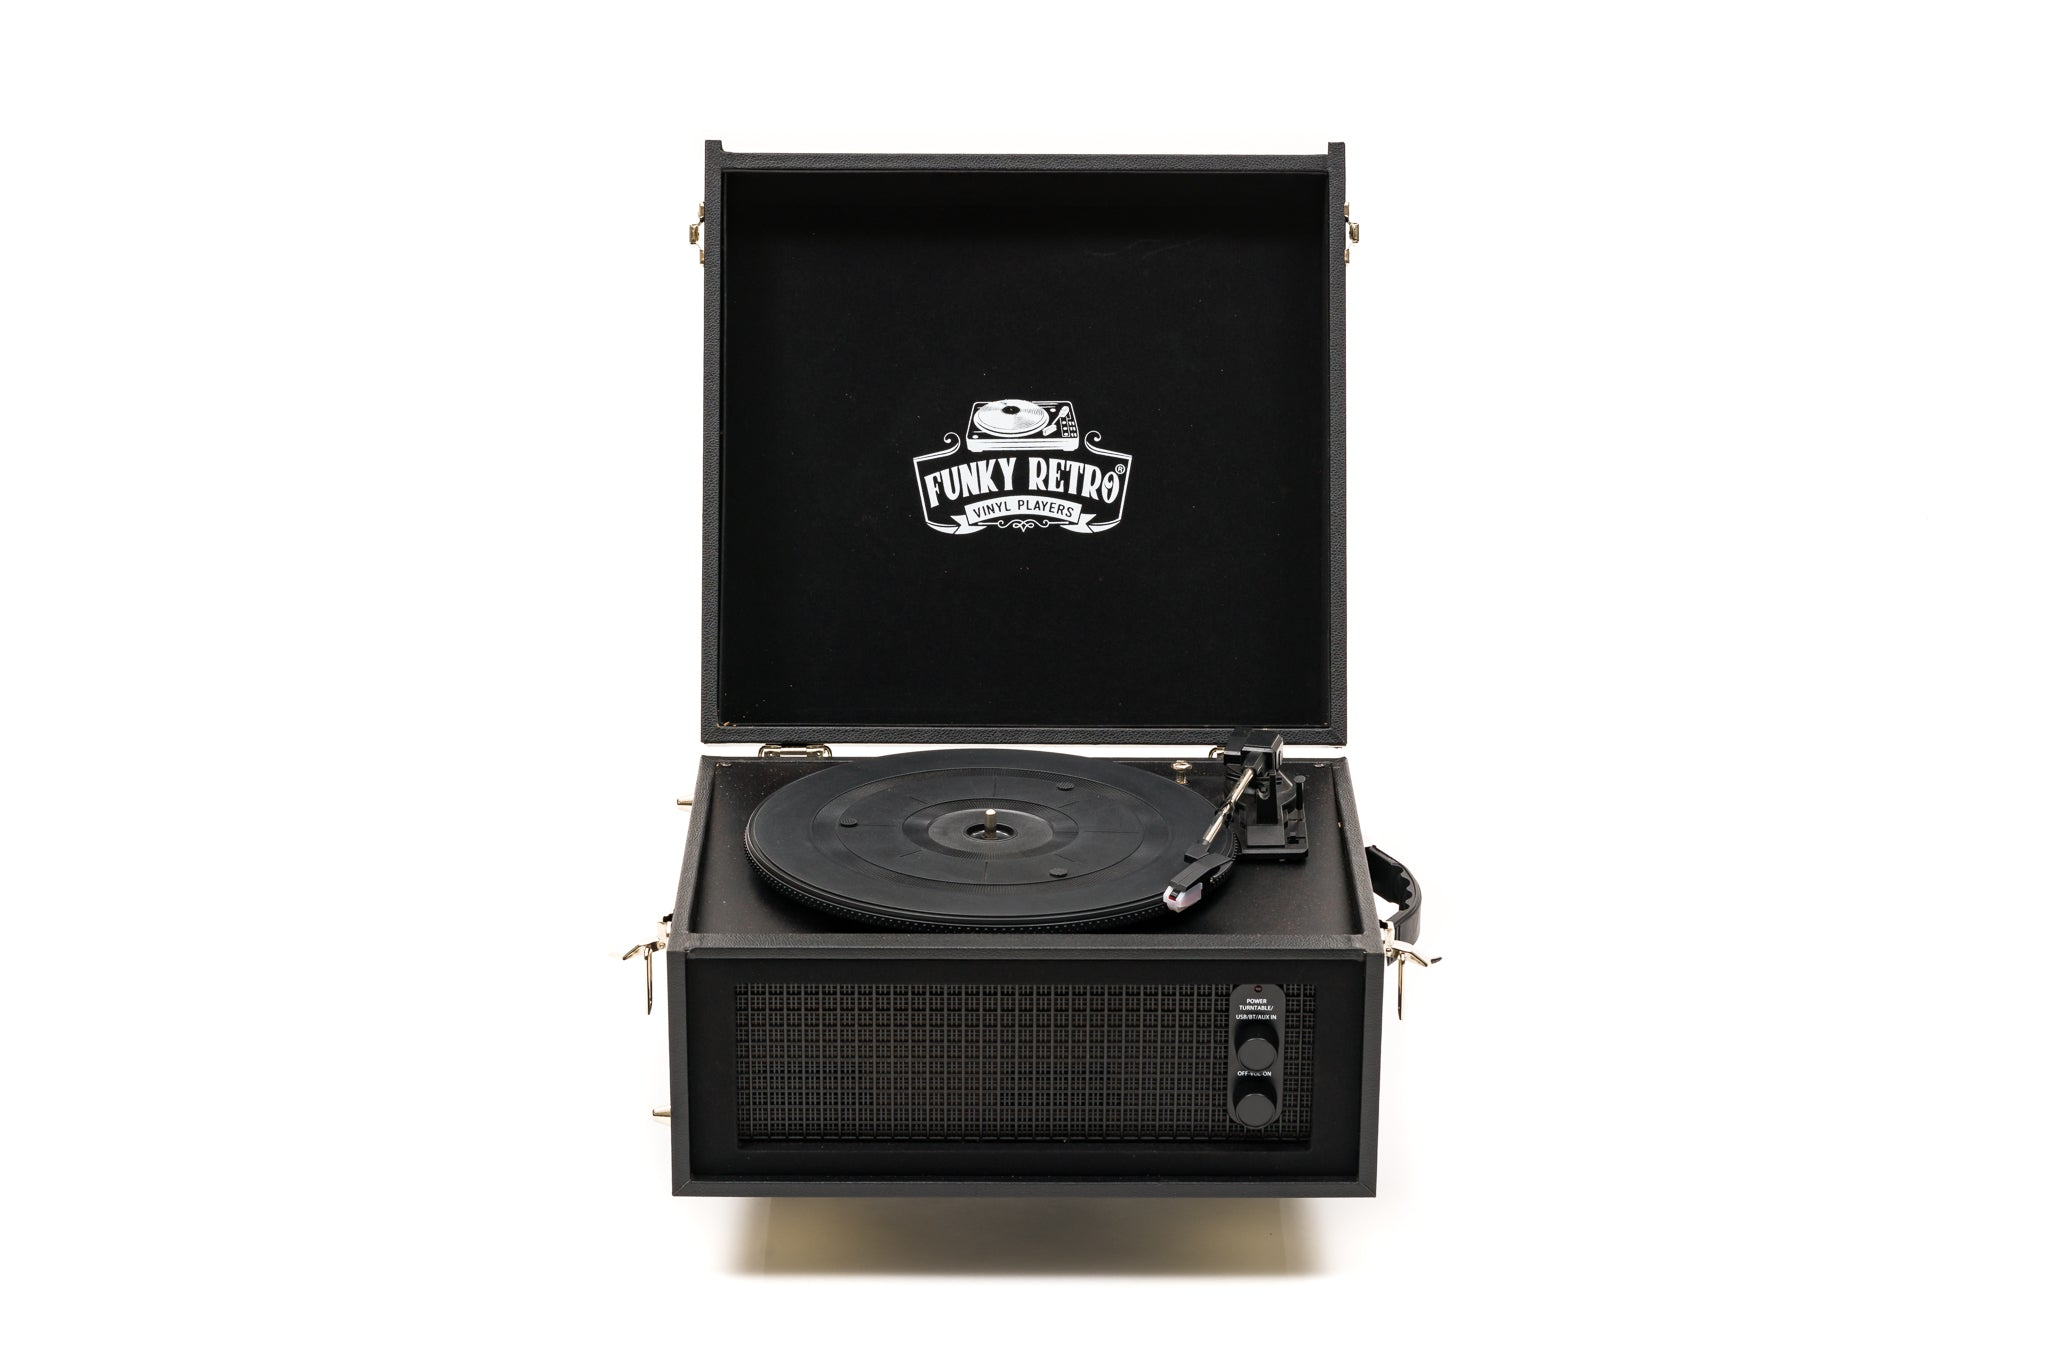 Designer Funky Retro Record / Vinyl Player / Turntable Black